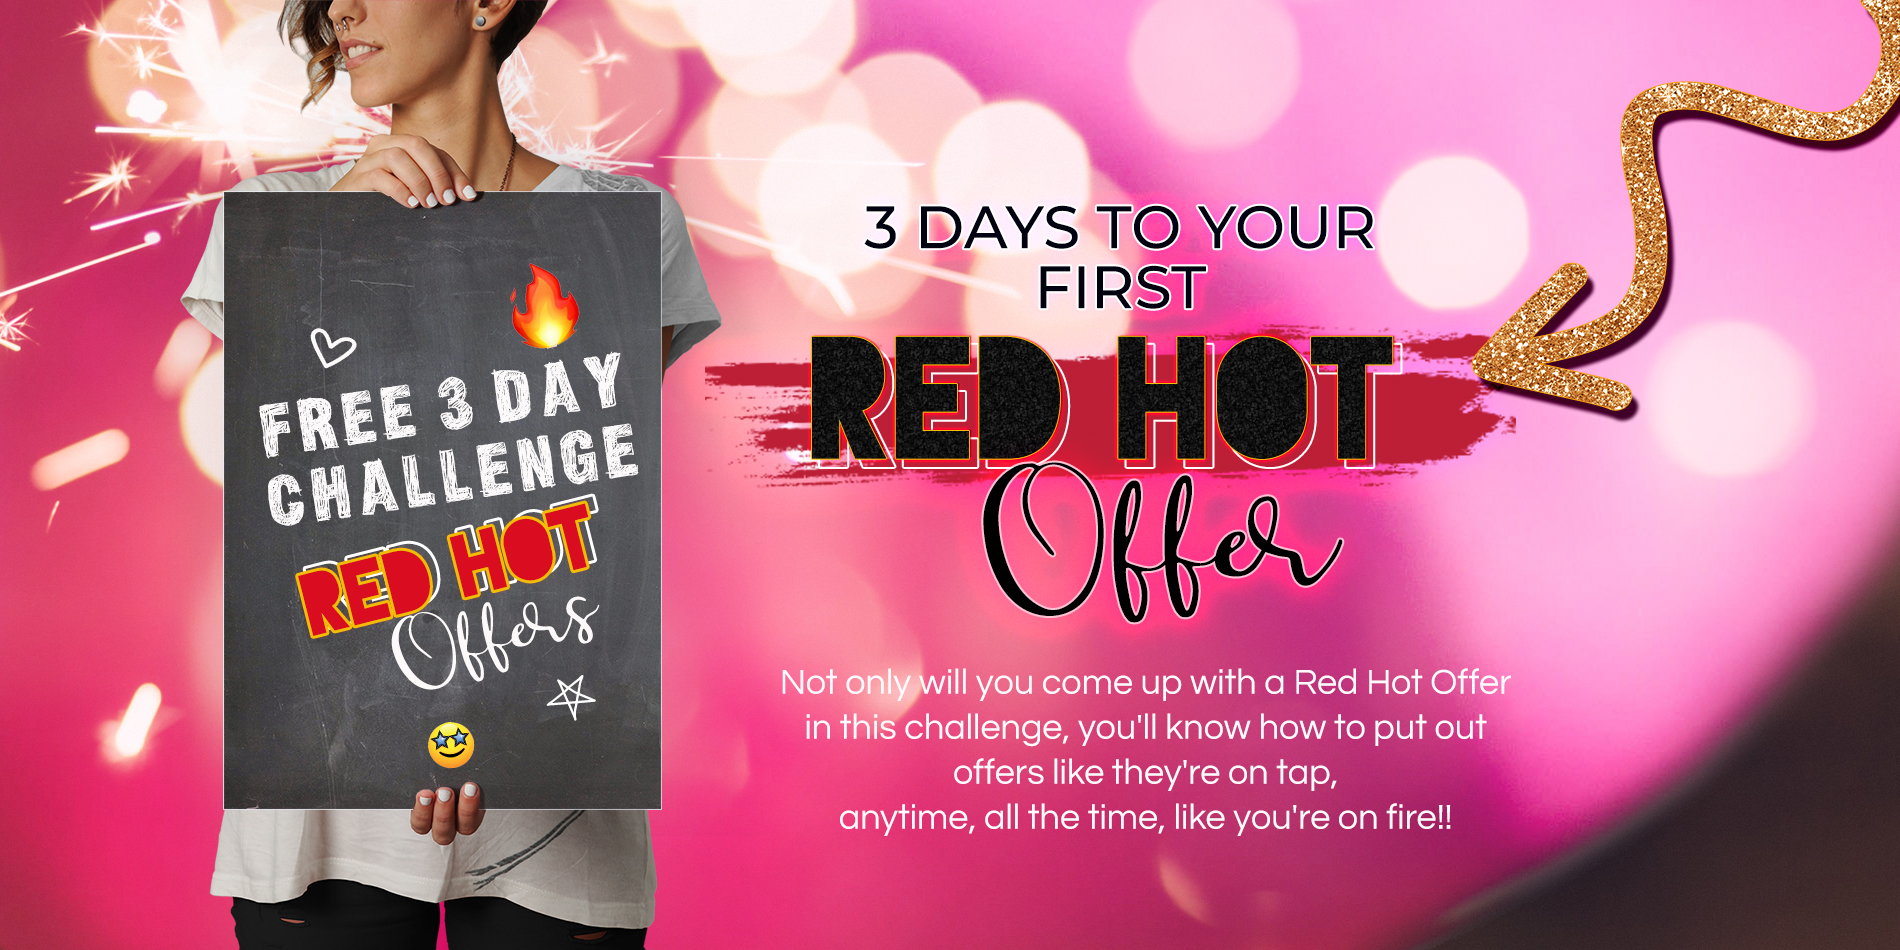 Your next RED HOT OFFER is right here!